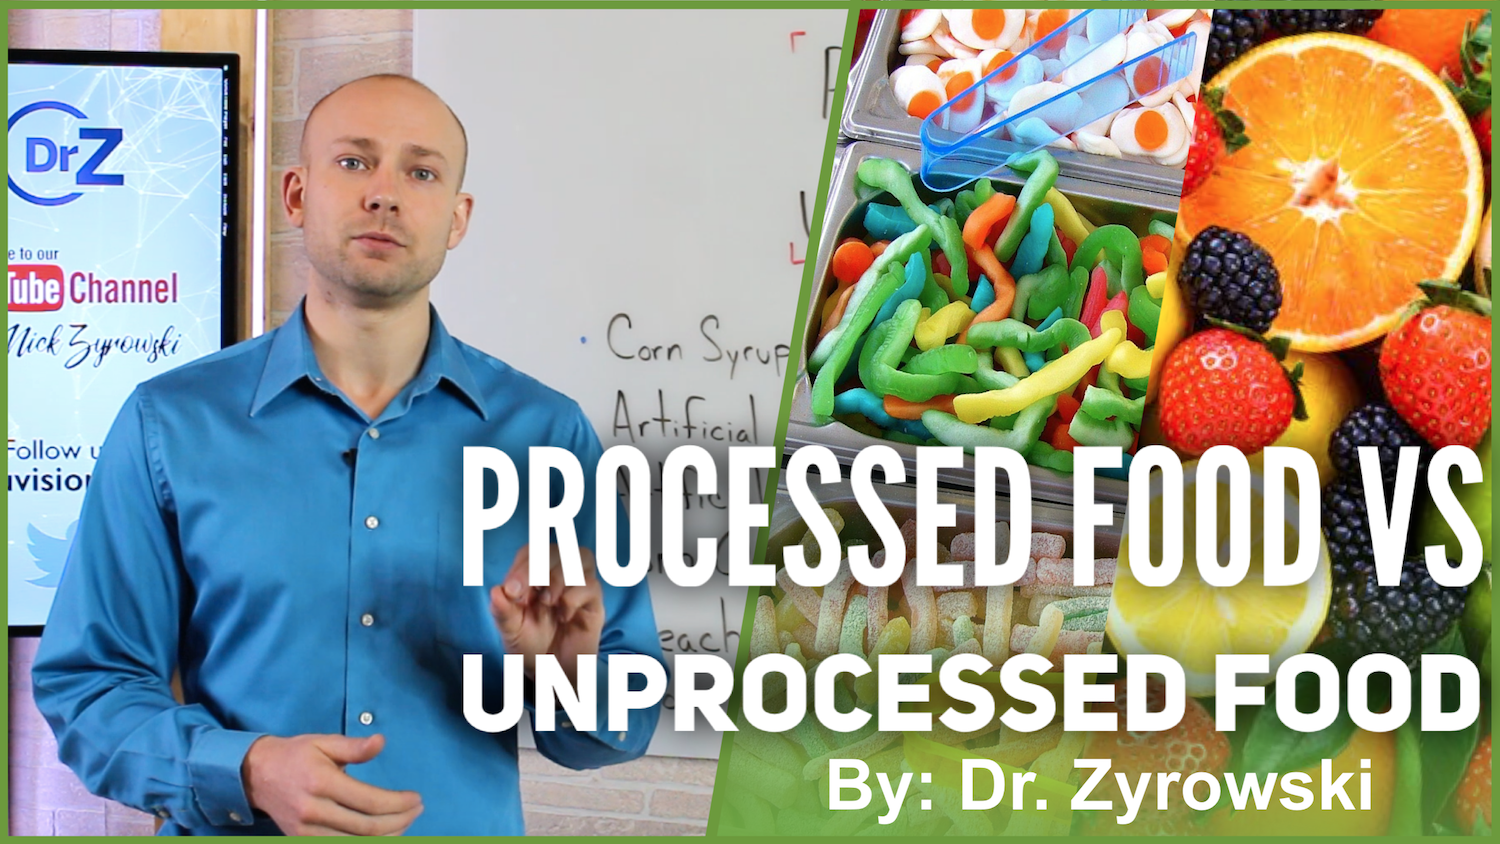 Processed Foods Vs Unprocessed Foods